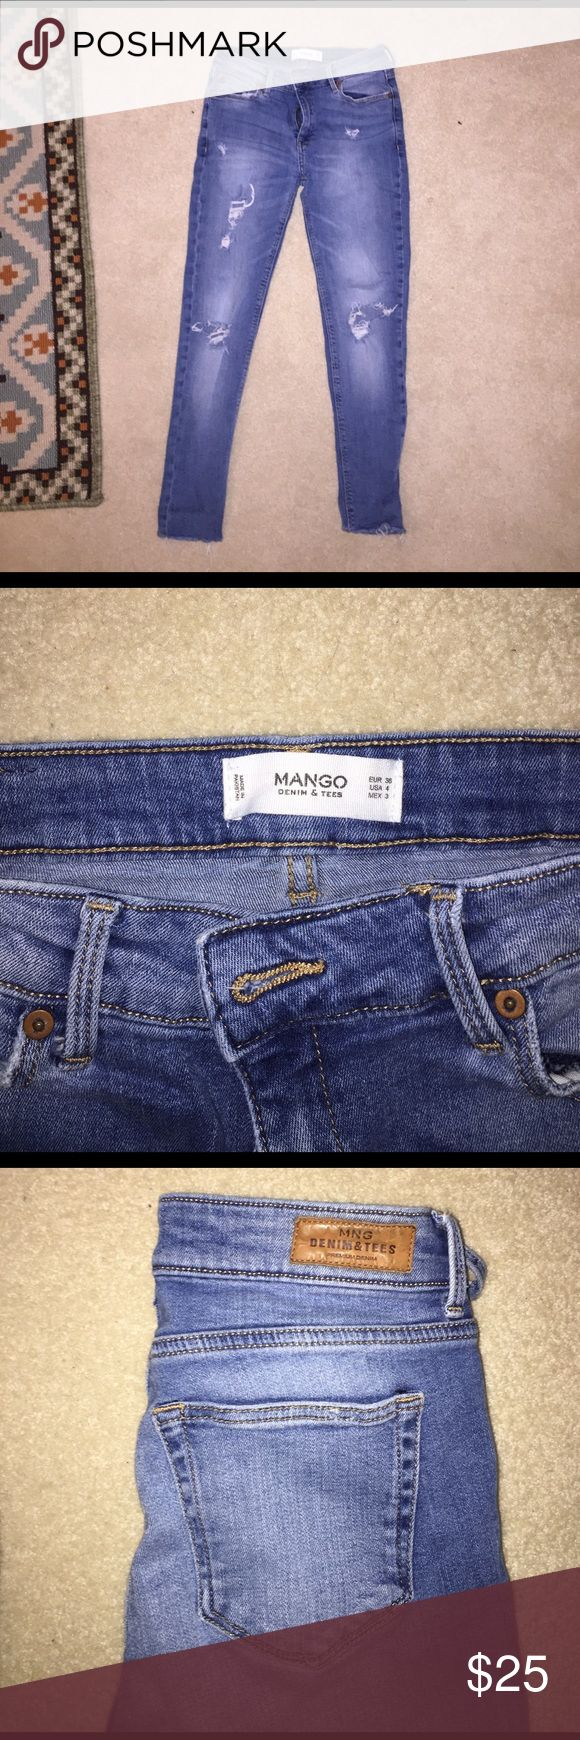 Mango ripped skinny jeans, stretchy material. Stretchy ripped cropped skinny jeans, soft material Mango Jeans Skinny